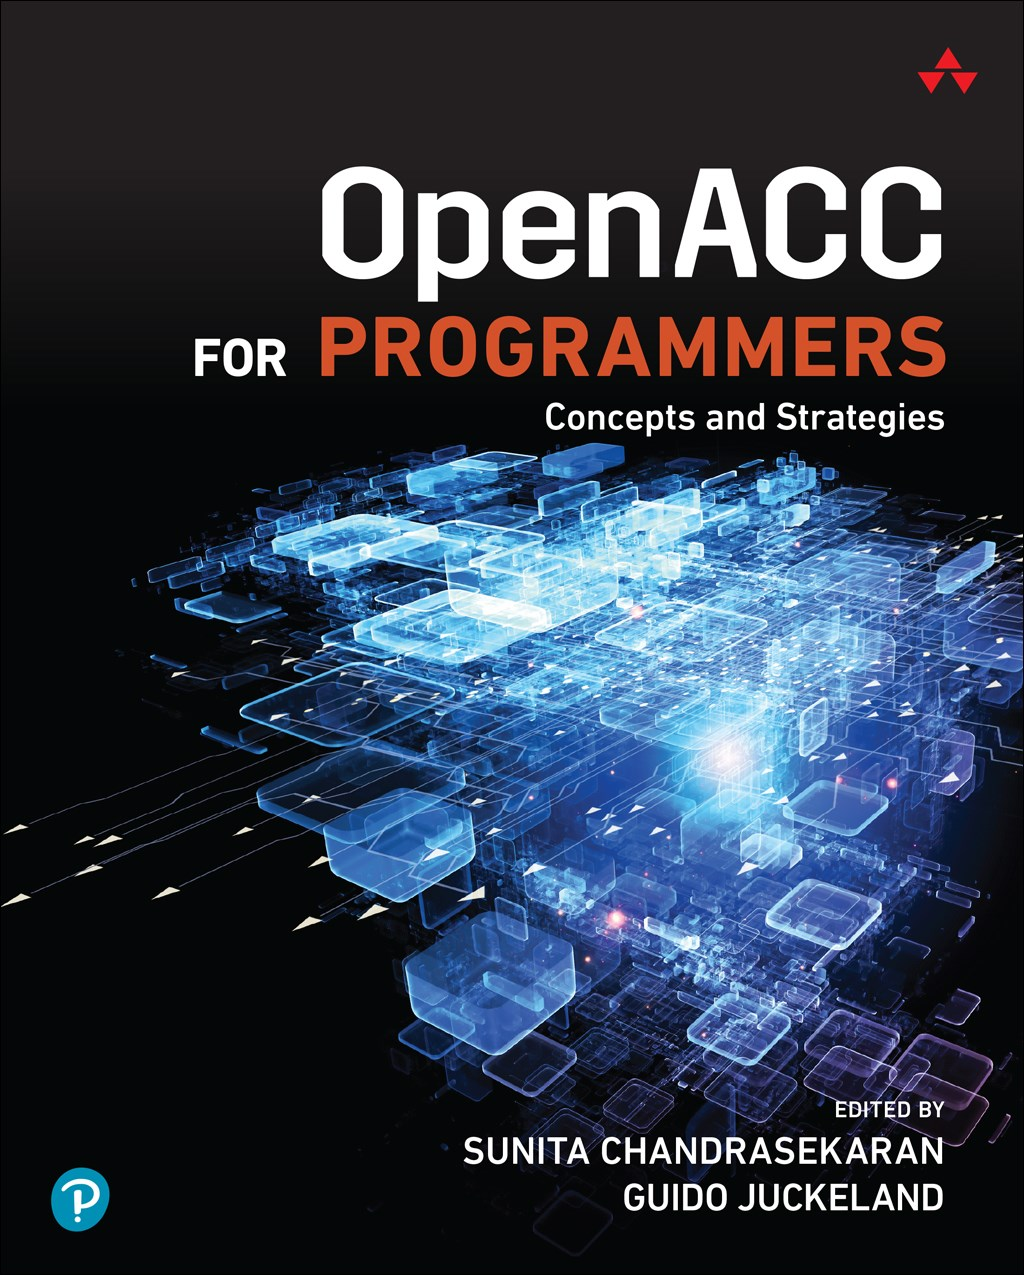 OpenACC for Programmers: Concepts and Strategies